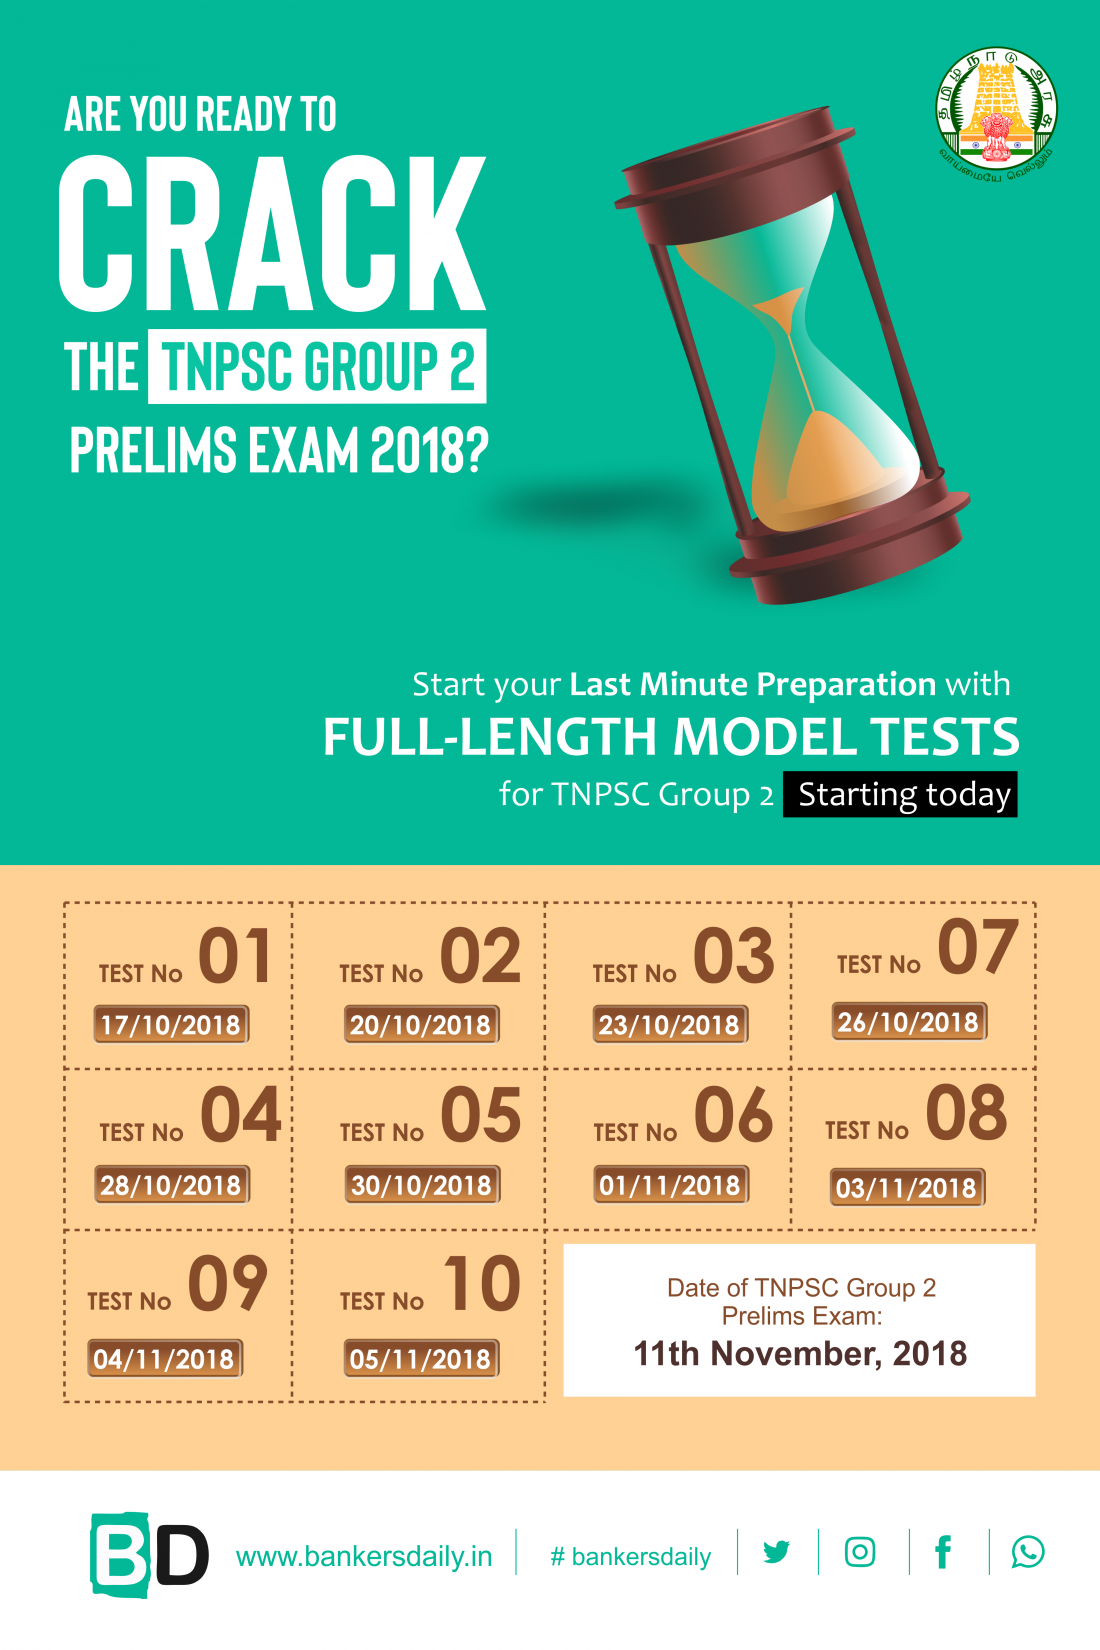 10 FULL LENGTH MOCK TEST for TNPSC GROUP 2 Prelims Exam 2018 - Bankersdaily